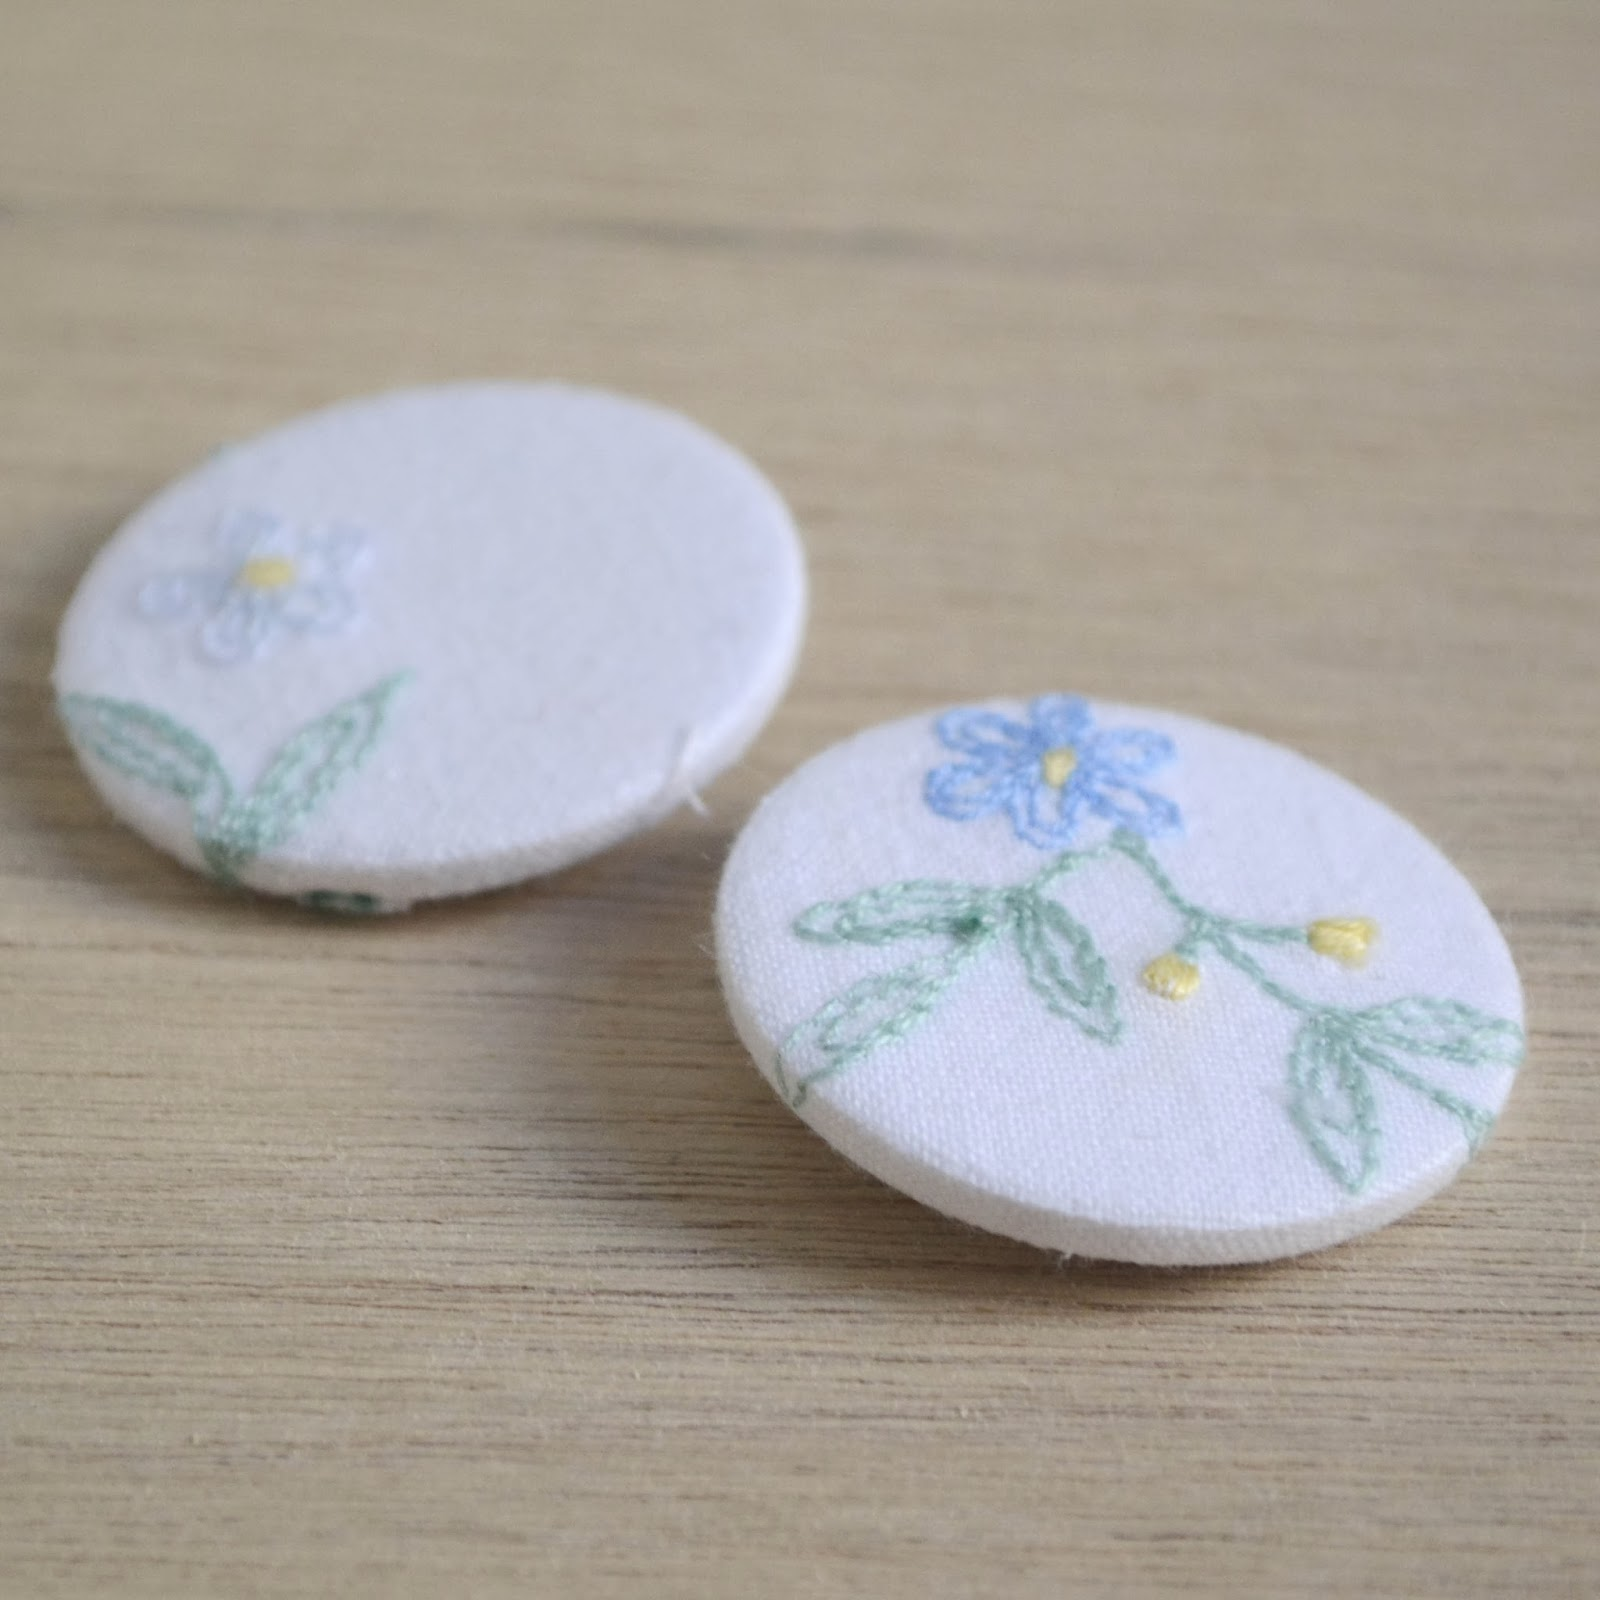 https://www.etsy.com/listing/175723918/pretty-embroidered-floral-fabric-badges?ref=listing-shop-header-0